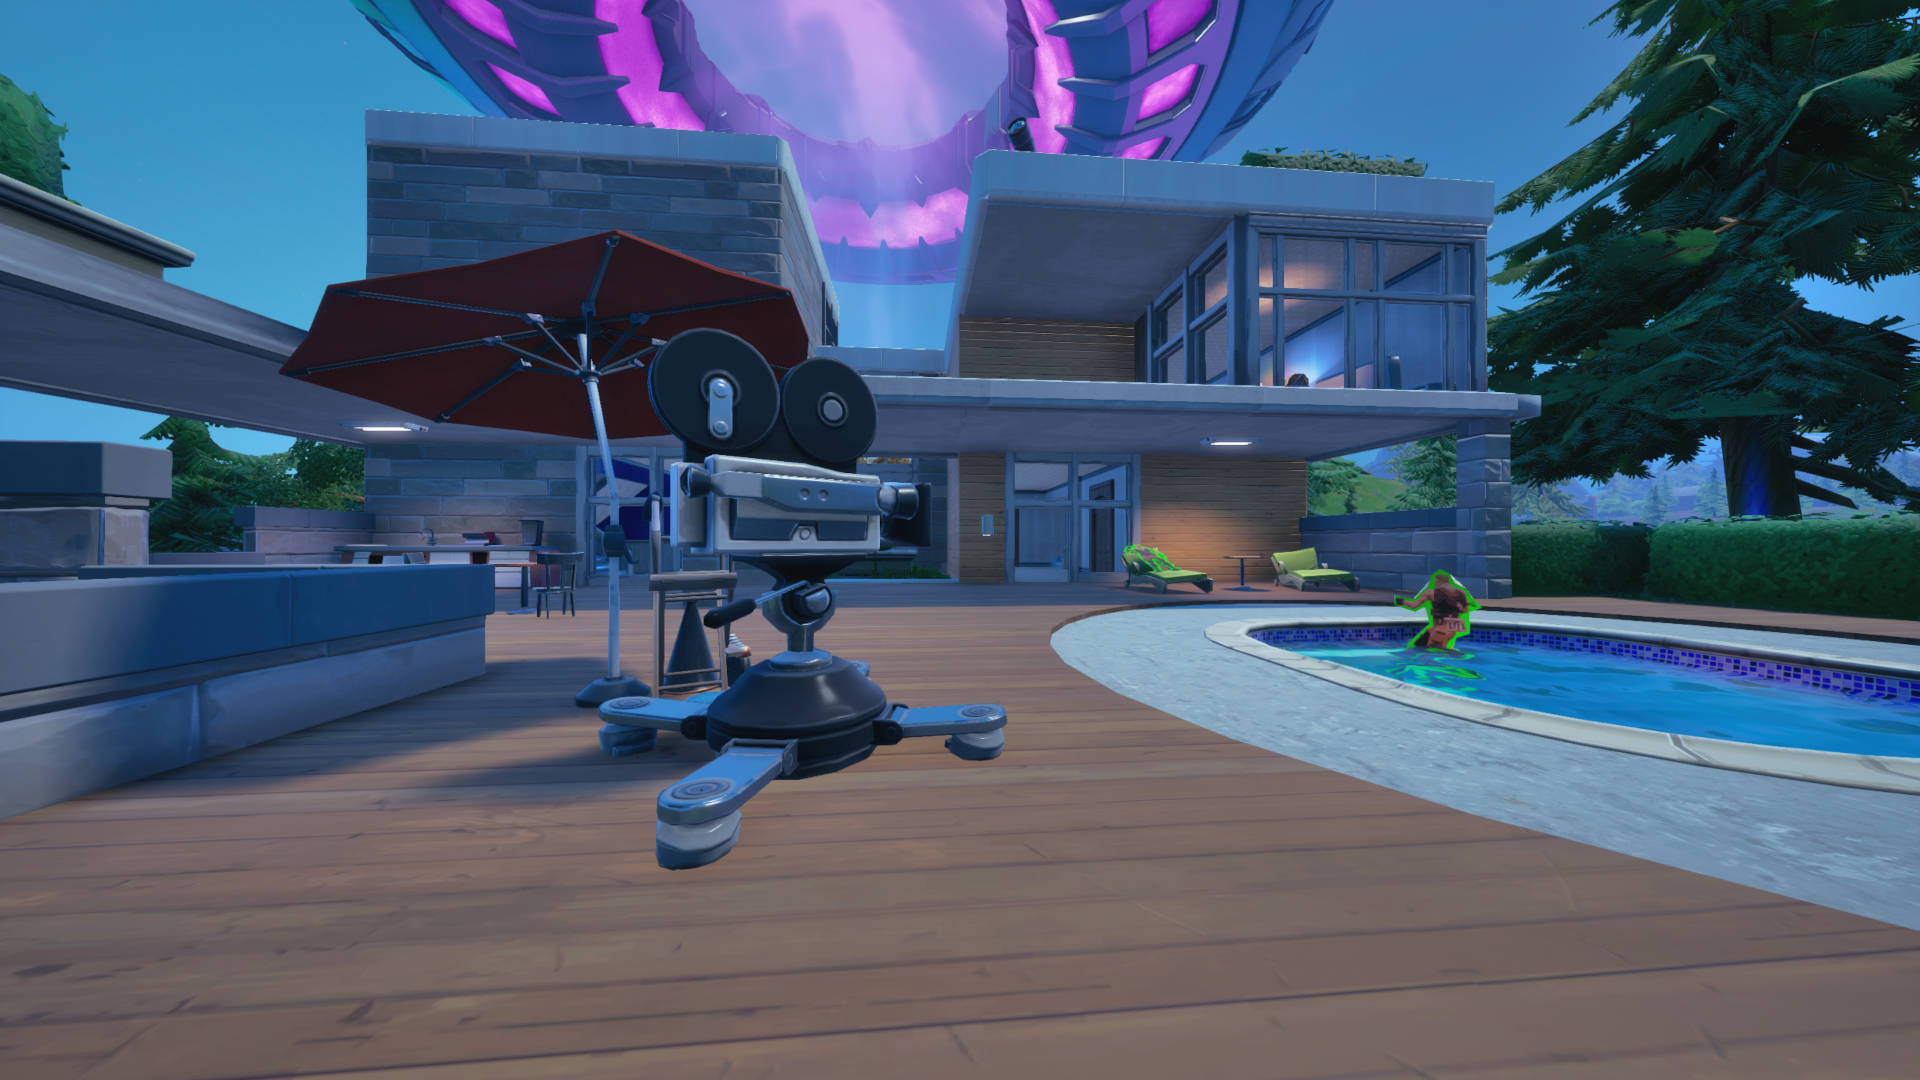 Where to emote in front of a camera in Fortnite